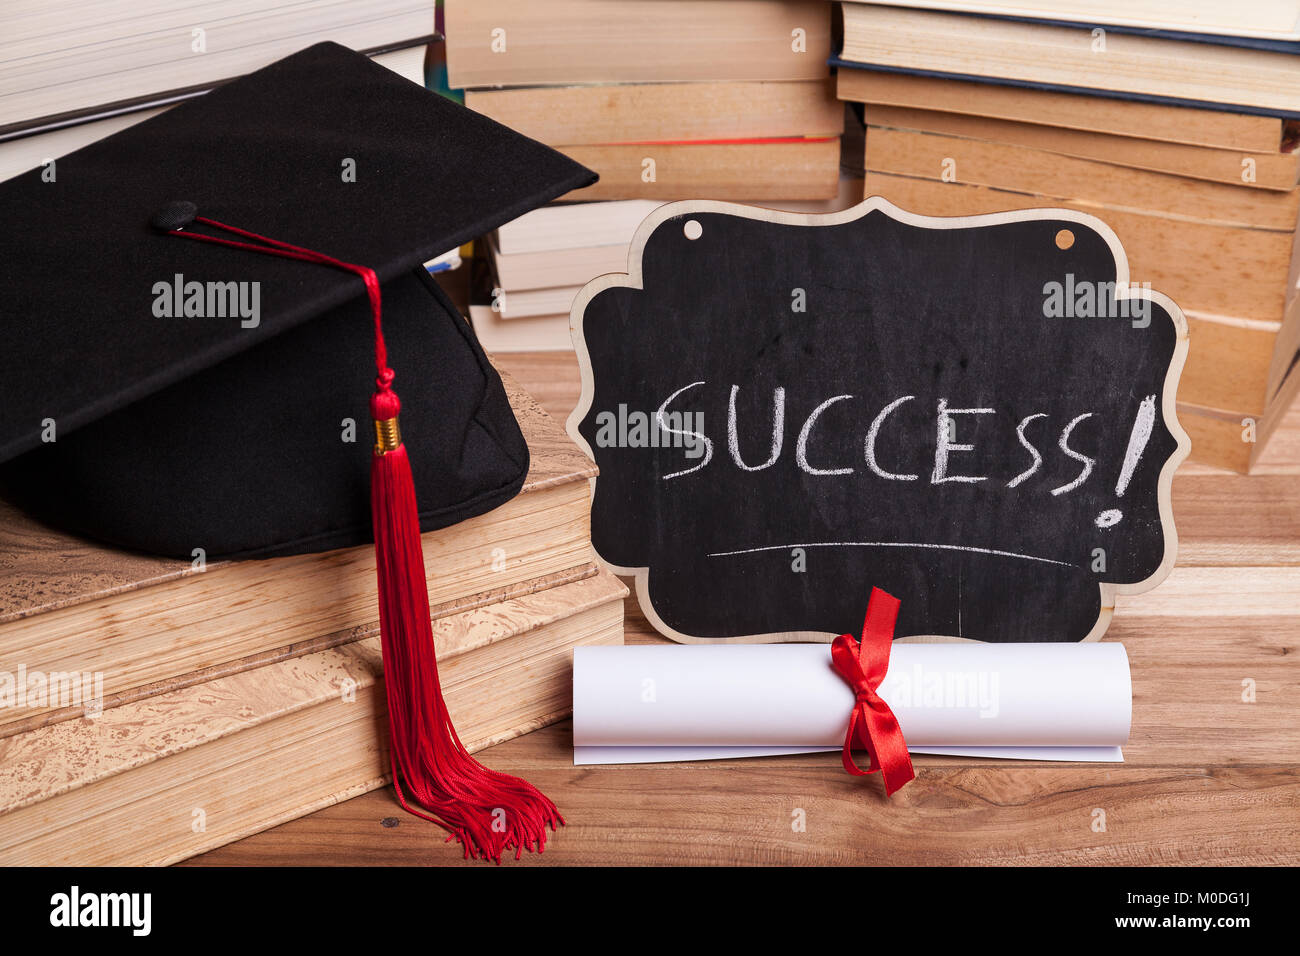 Little blackboard next to a diploma, some books, and a black mortarboard with red tassel. - Stock Image